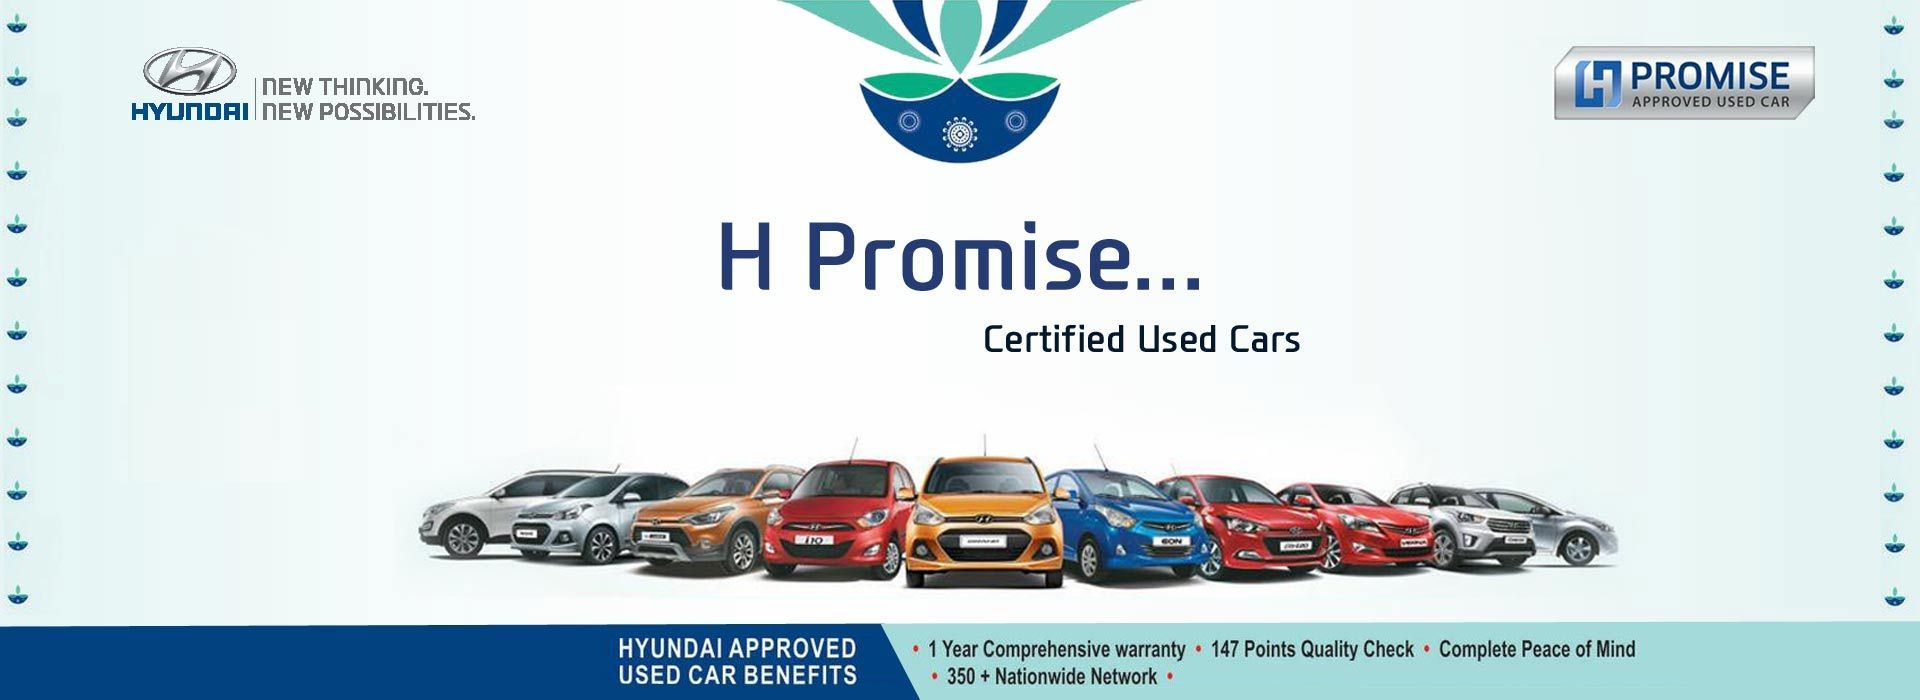 Find The Latest Price List For Hyundai Car In Chennai Only At V3 Hyundai In 2020 Hyundai Cars Hyundai Certified Used Cars